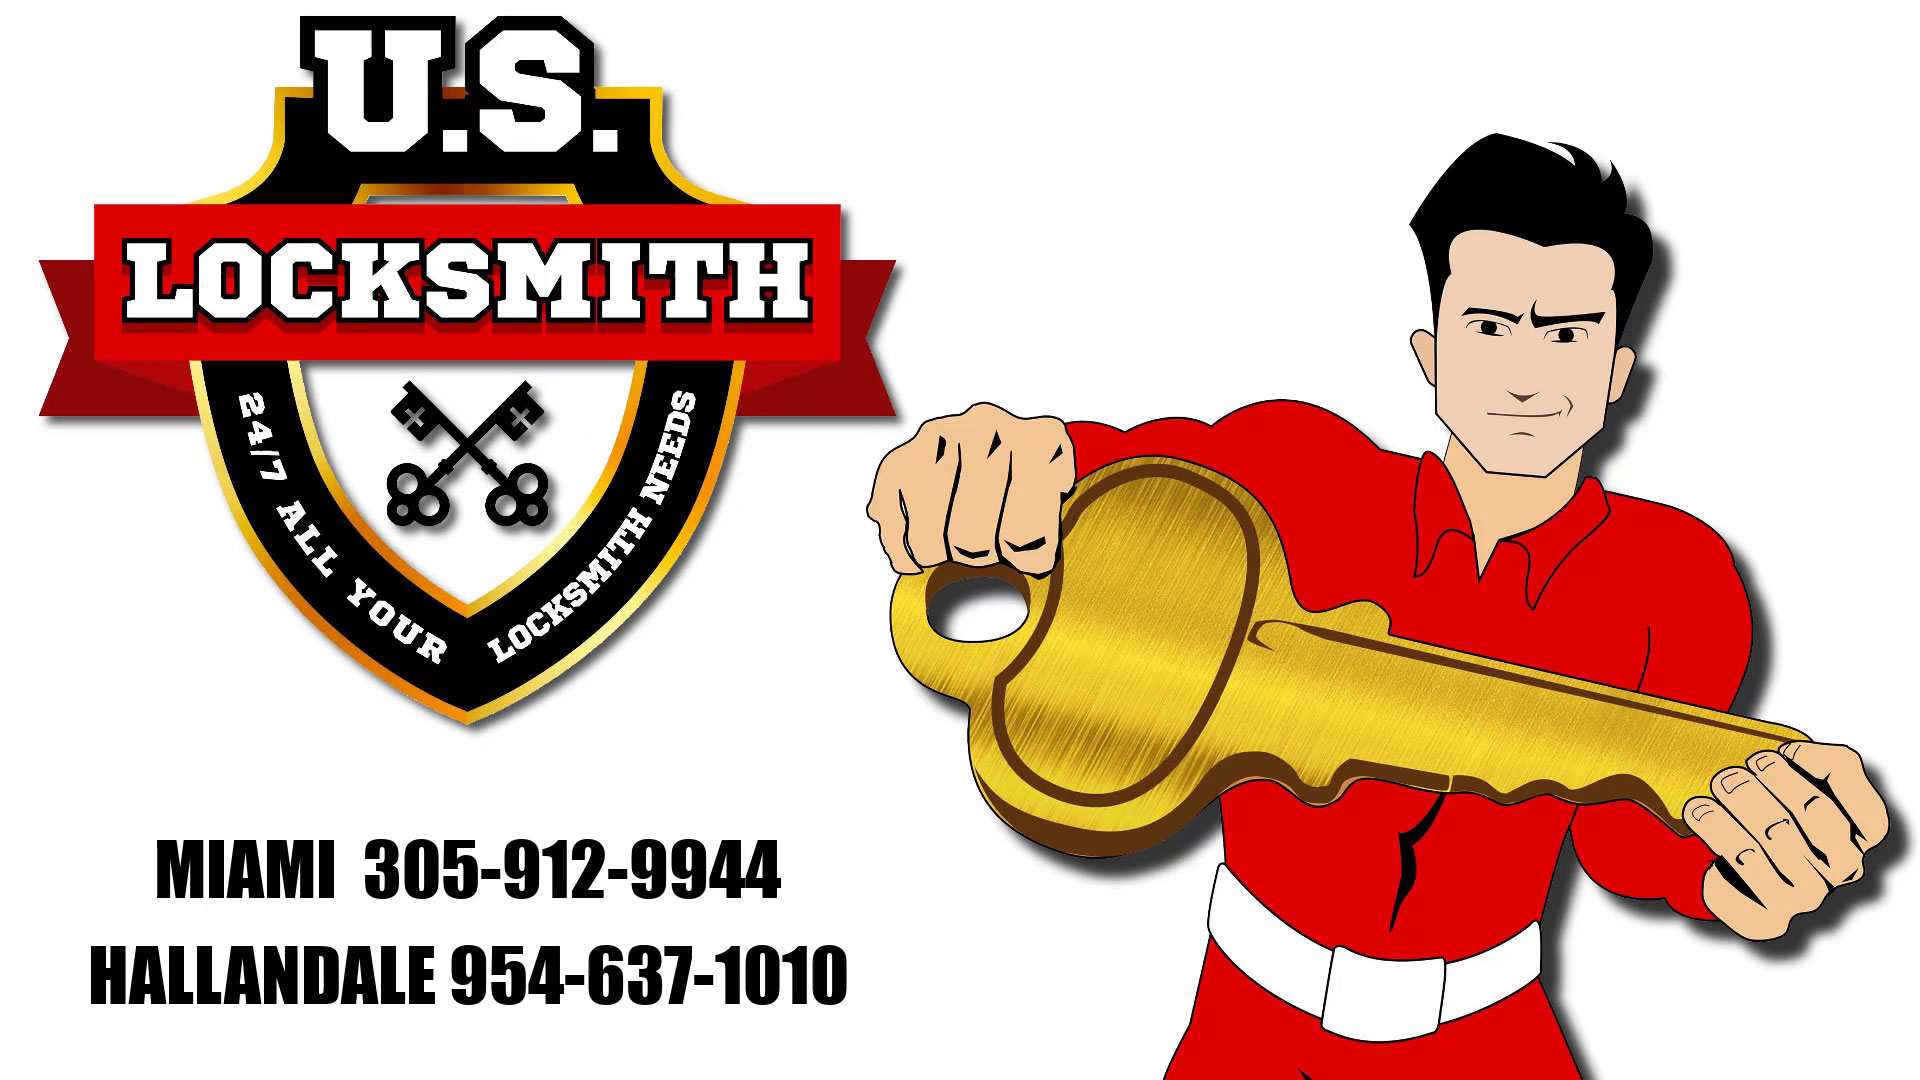 24/7 US Locksmith